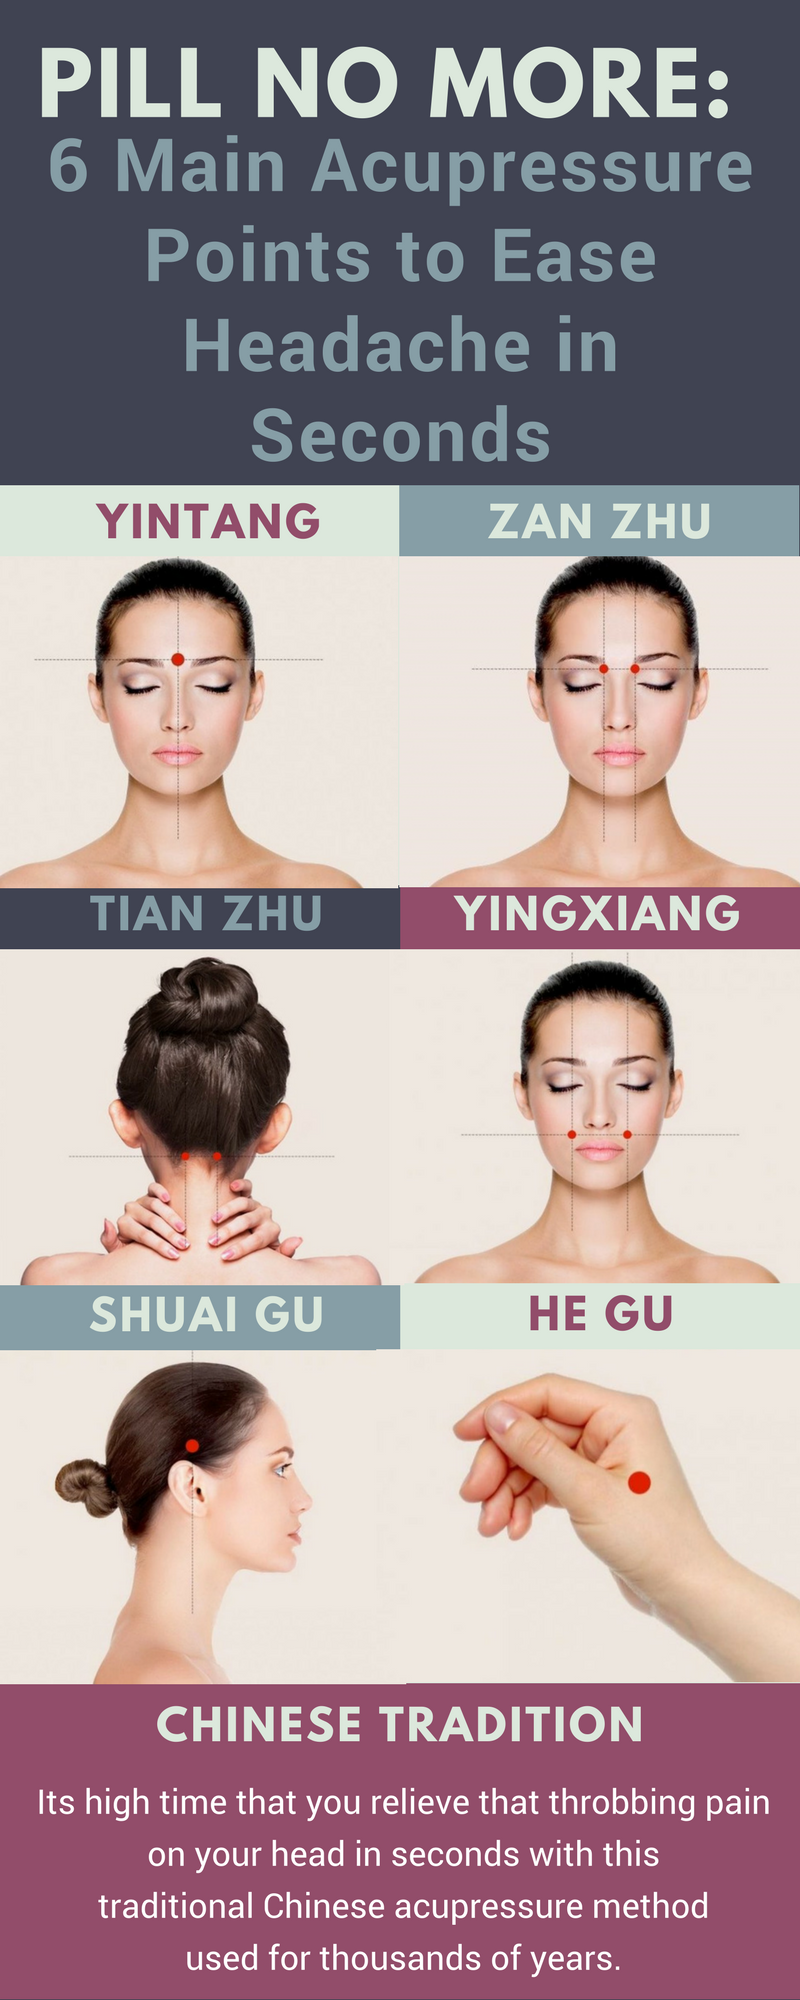 Pill No More: 6 Main Acupressure Points to Ease Headache in Seconds